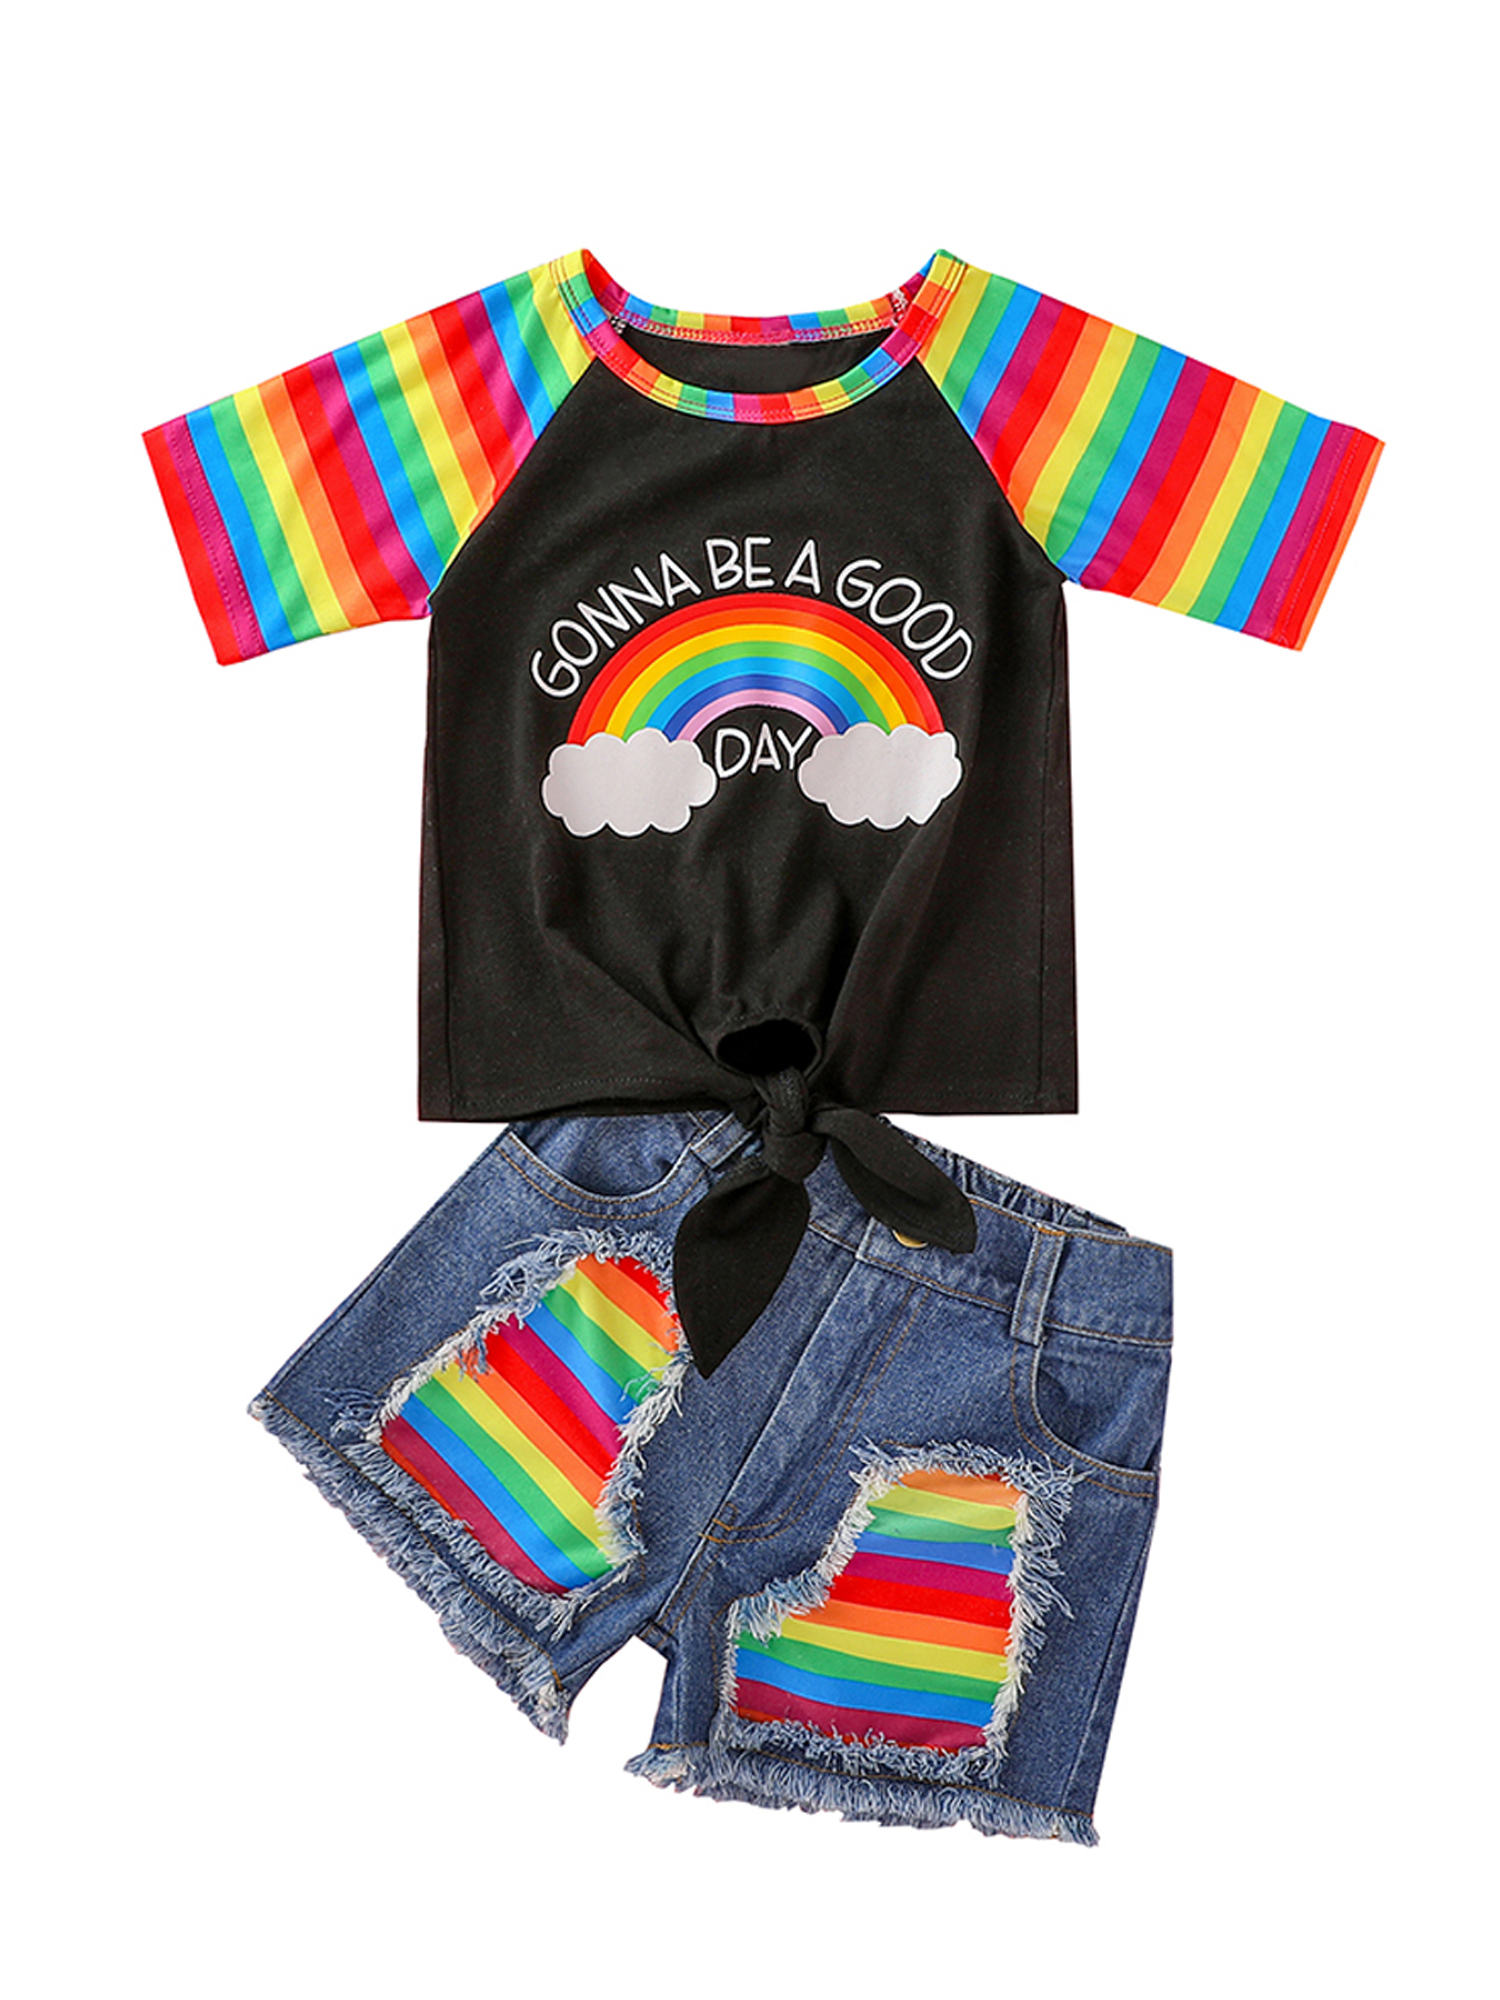 Toddler Boy 3 PC Outfit Set Party Suit Size 1-6 Years Jacket+Top+Jeans..gift